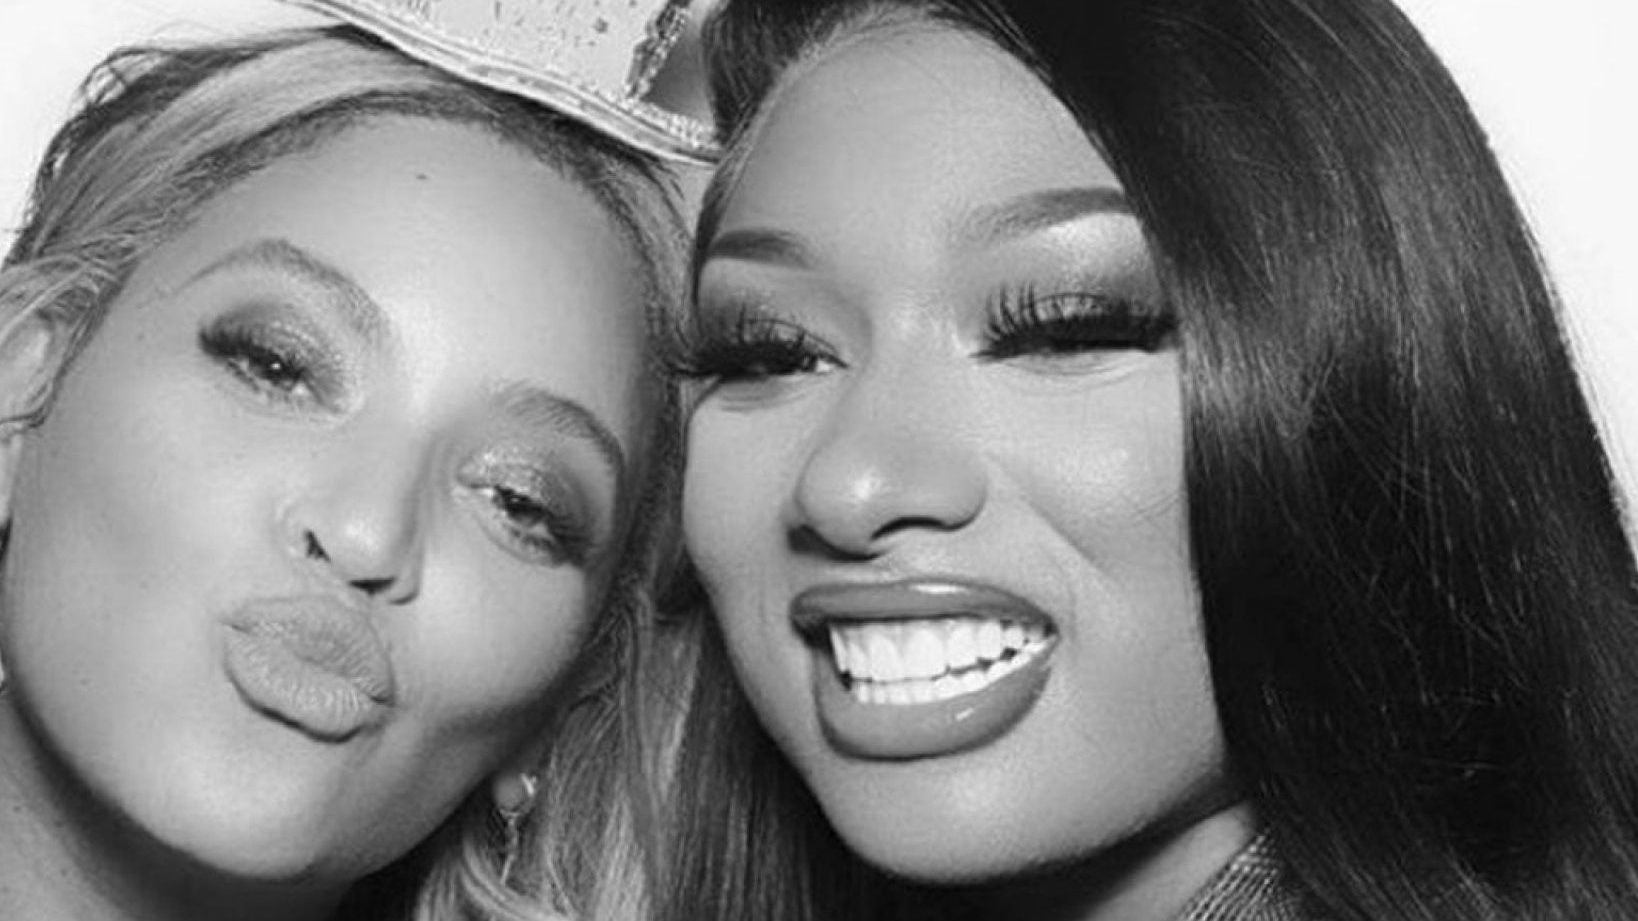 Megan Thee Stallion May Perform With Beyoncé At The 2021 Grammys